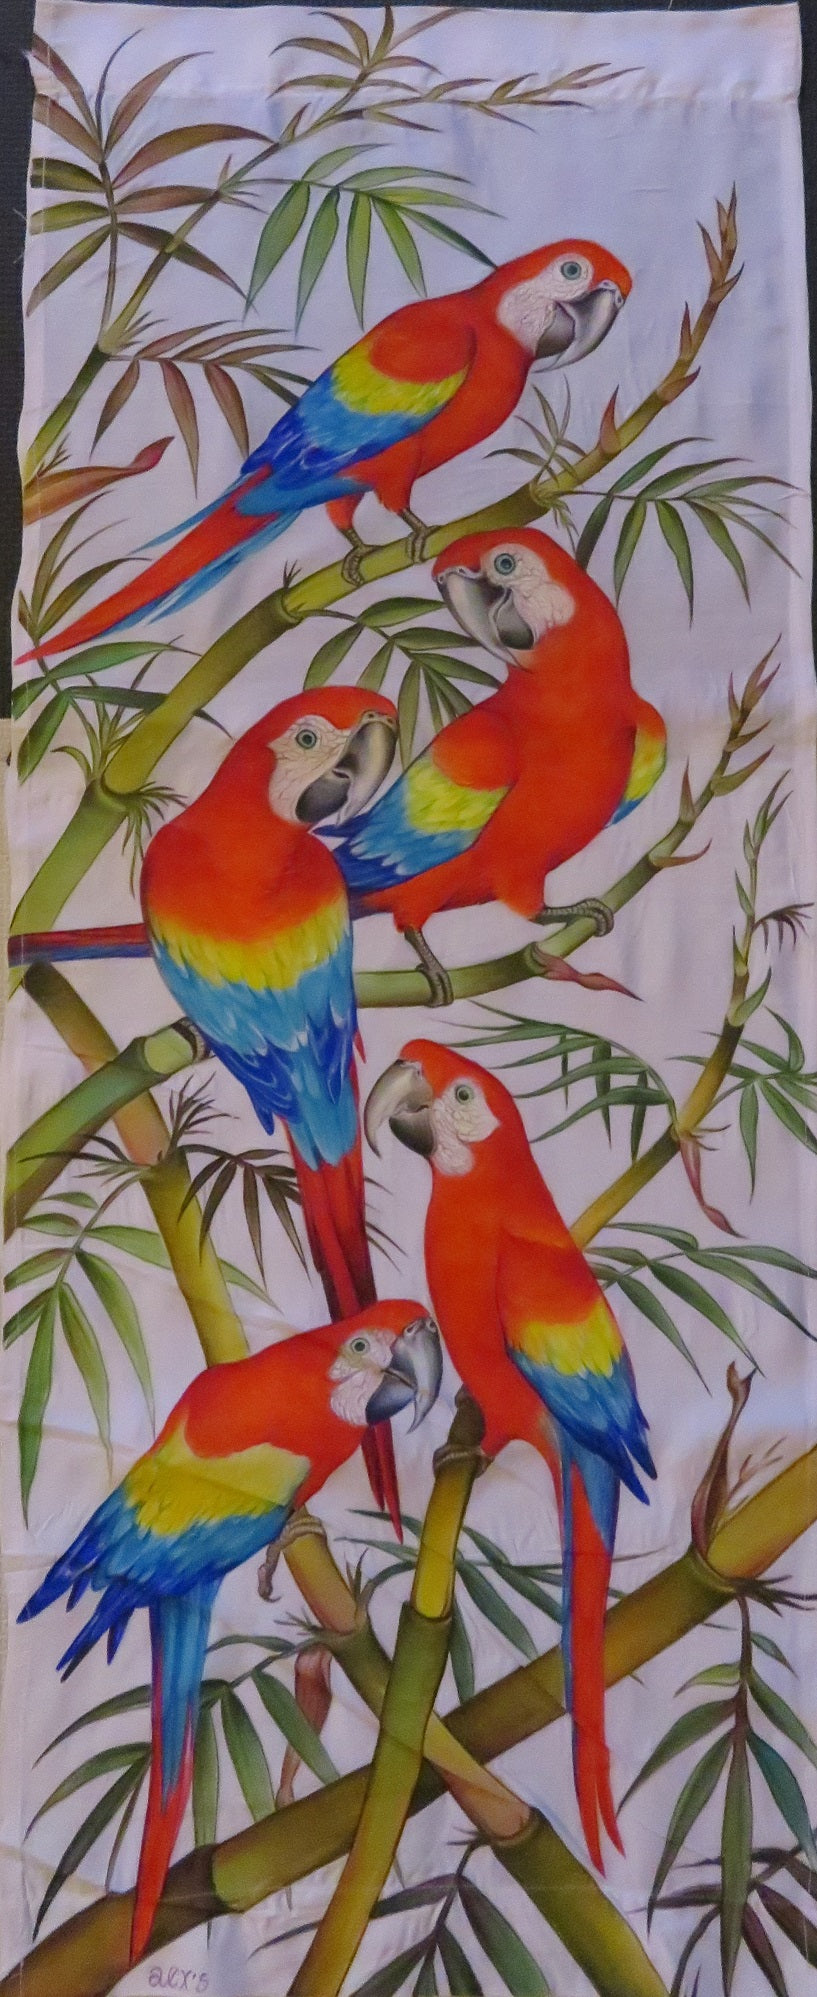 Scarlet Macaws original painting - acrylic on rayon - no framing needed!